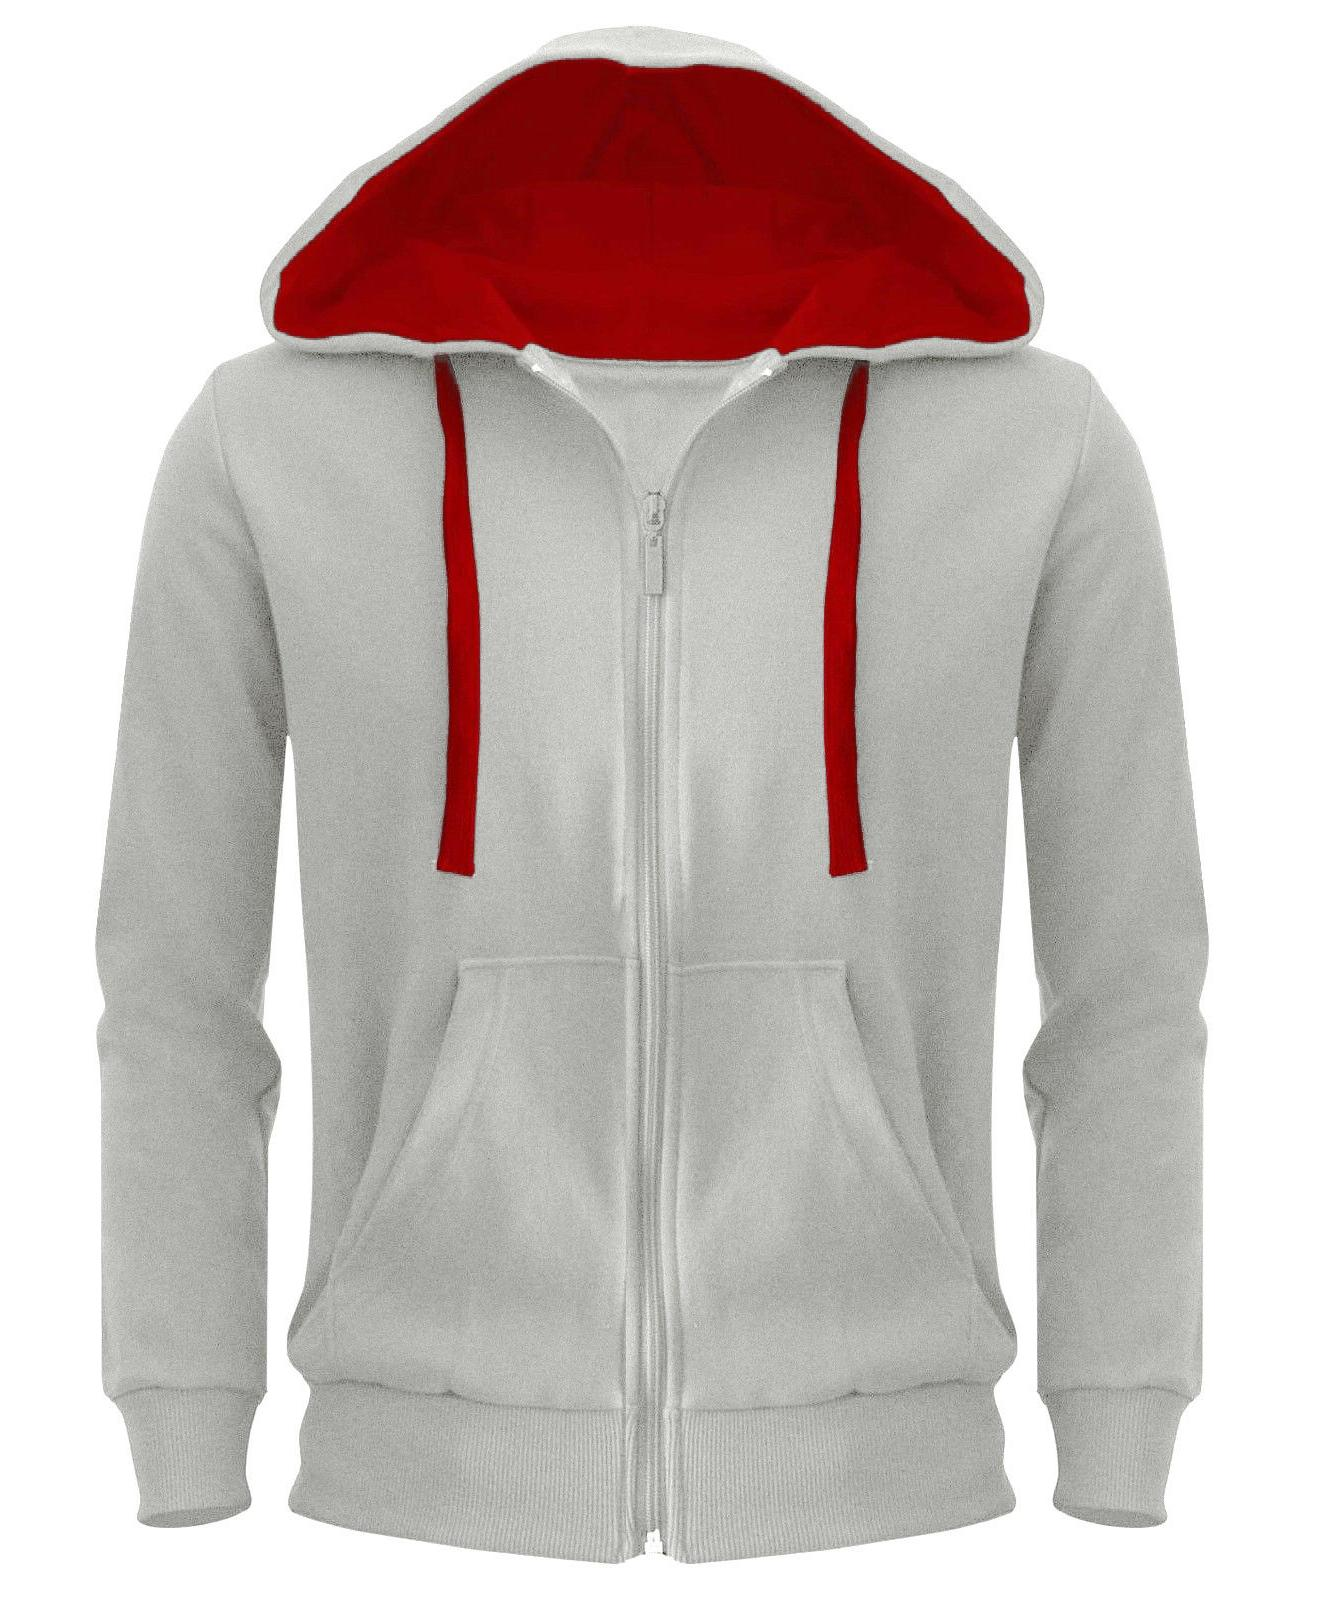 Mens Hoodie Zipper Hooded Top American New